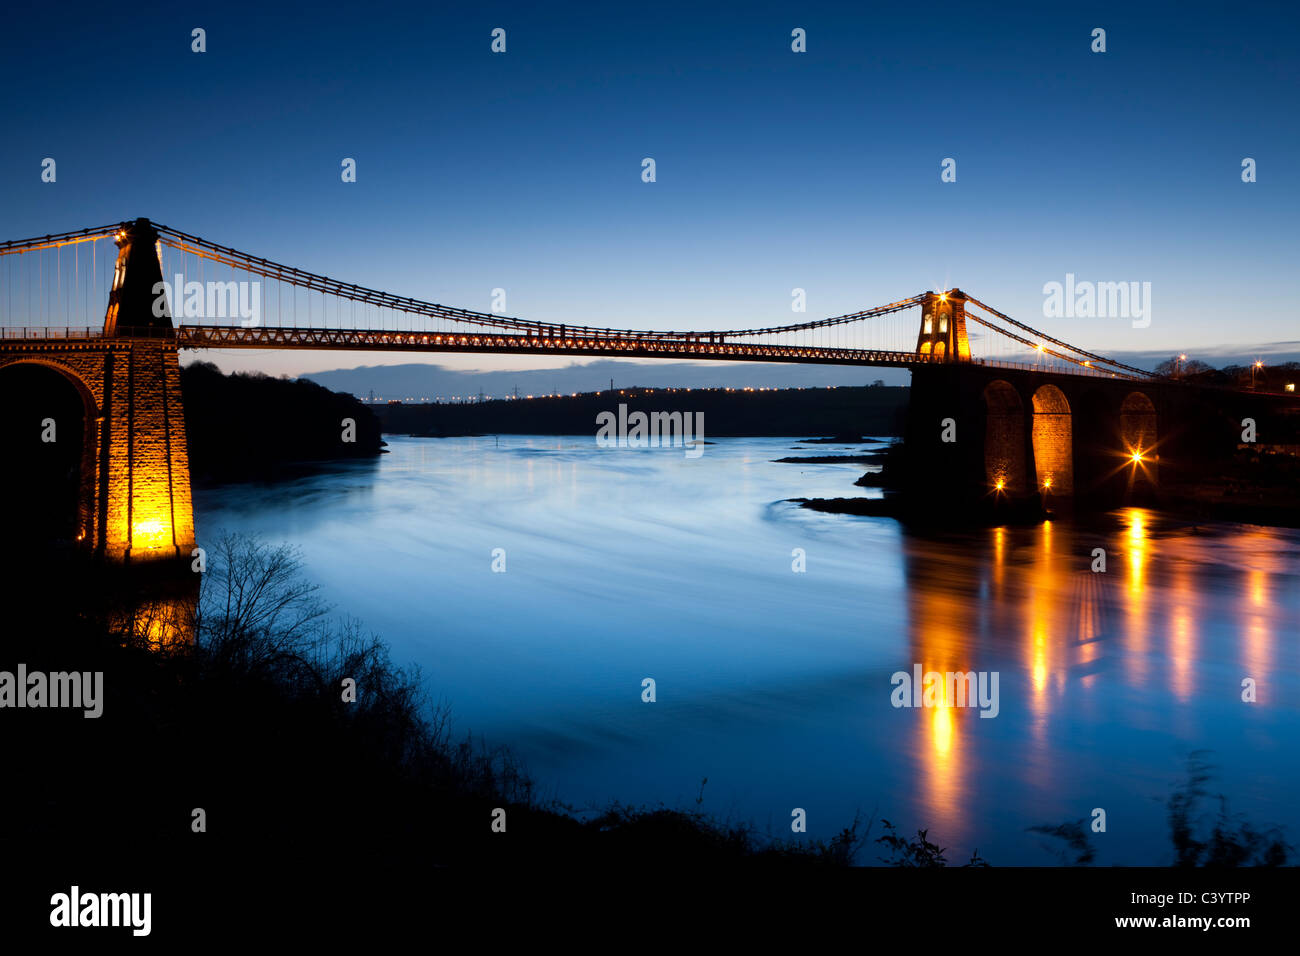 Evening illuminations on the Menai Bridge spanning the Menai Strait, Anglesey, North Wales, UK. Spring (April) 2011. - Stock Image